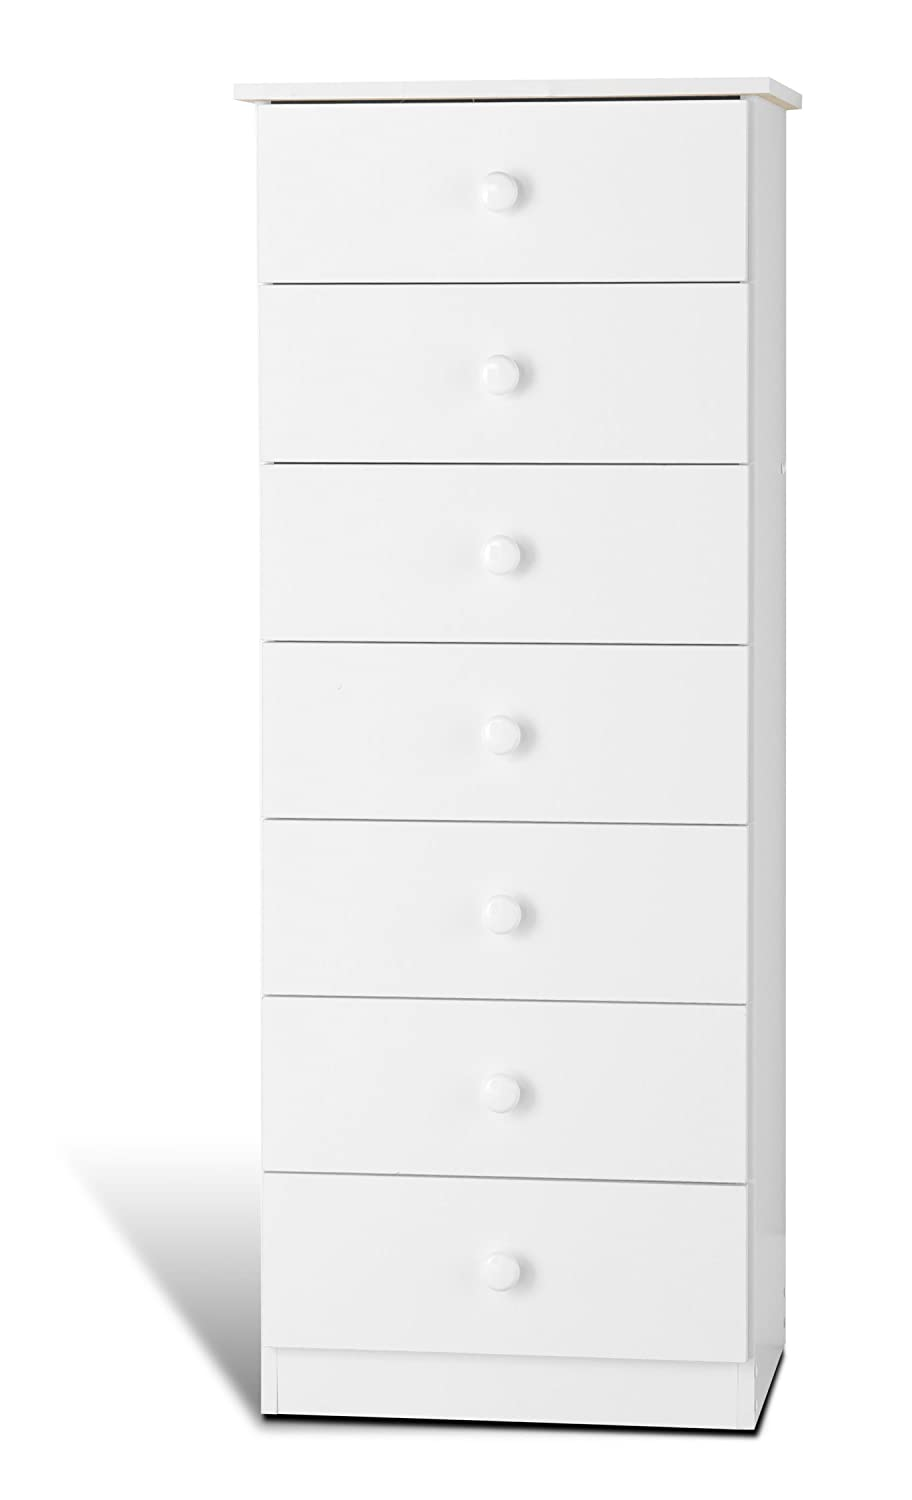 prepac 7 drawer lingerie chest in white whd 2050 7 20 w x